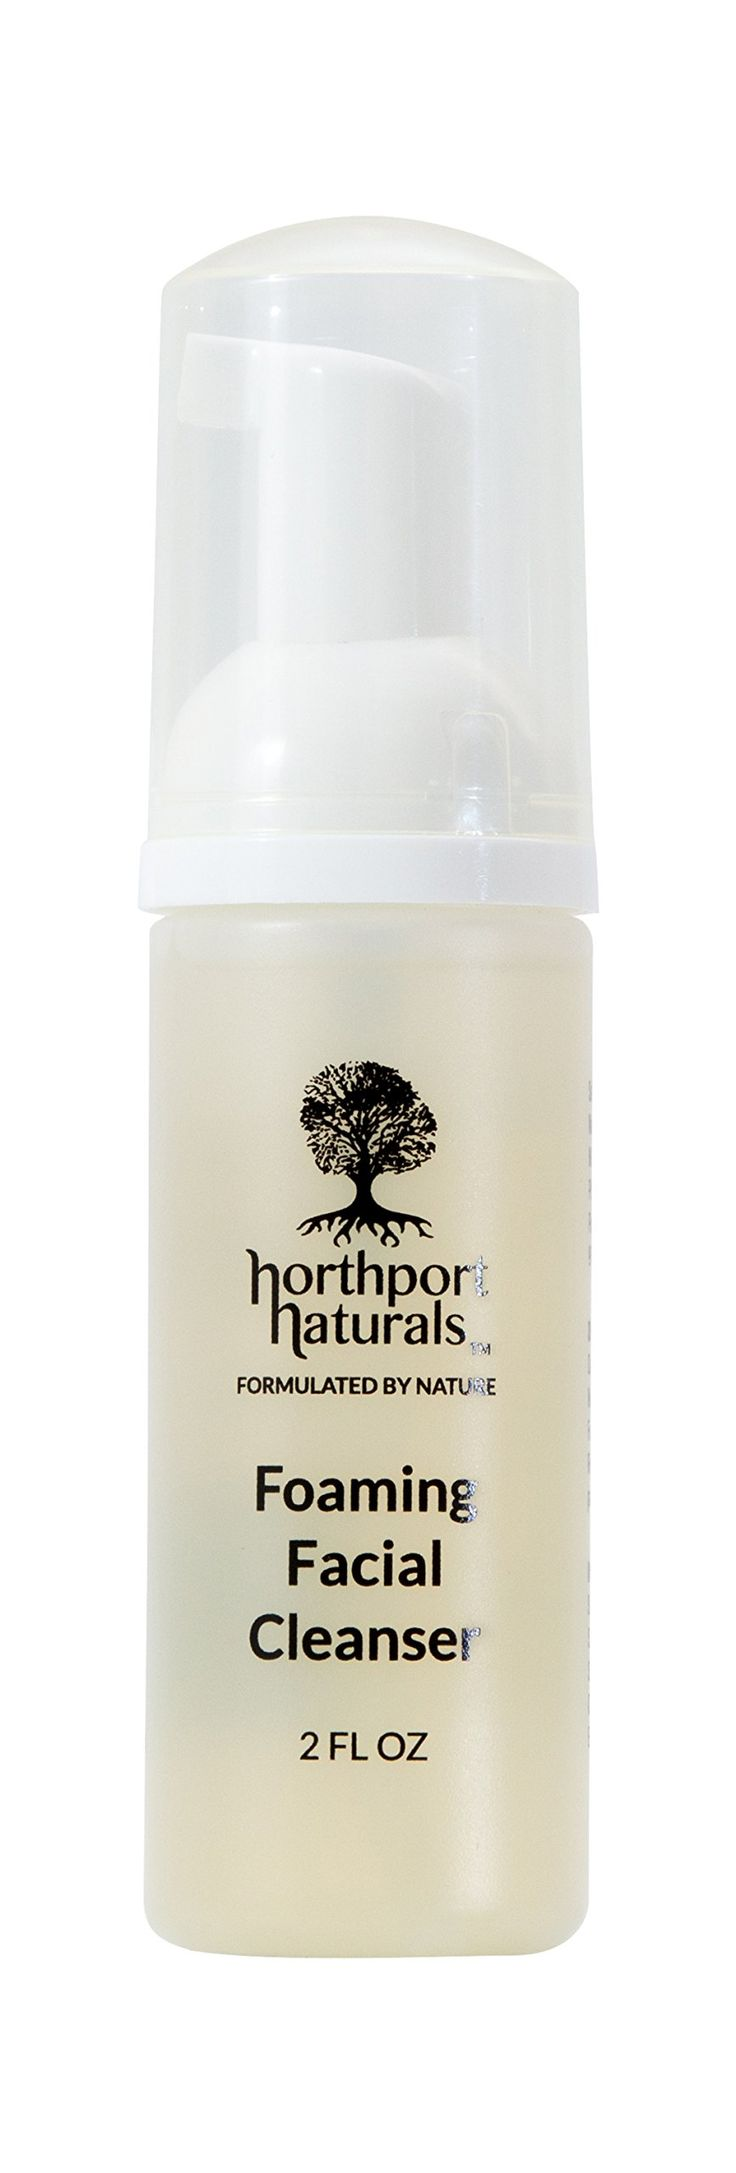 Premium Natural Foaming Facial Cleanser By Northport Naturals - Antimicrobial & Antibacterial Deep Cleanse For Your Face Skin - Vegan & Cruelty-Free Certified - With Lemon Essential Oils & Vitamin C. ENJOY A DEEP & REJUVENATING CLEANSE: Are you looking for quality daily facial care products? Easy! Whether you're struggling with acne, oily skin, dry and chafed skin, or you just want to refresh and rejuvenate your face, this great natural foaming facial cleanser will do the trick for you!....